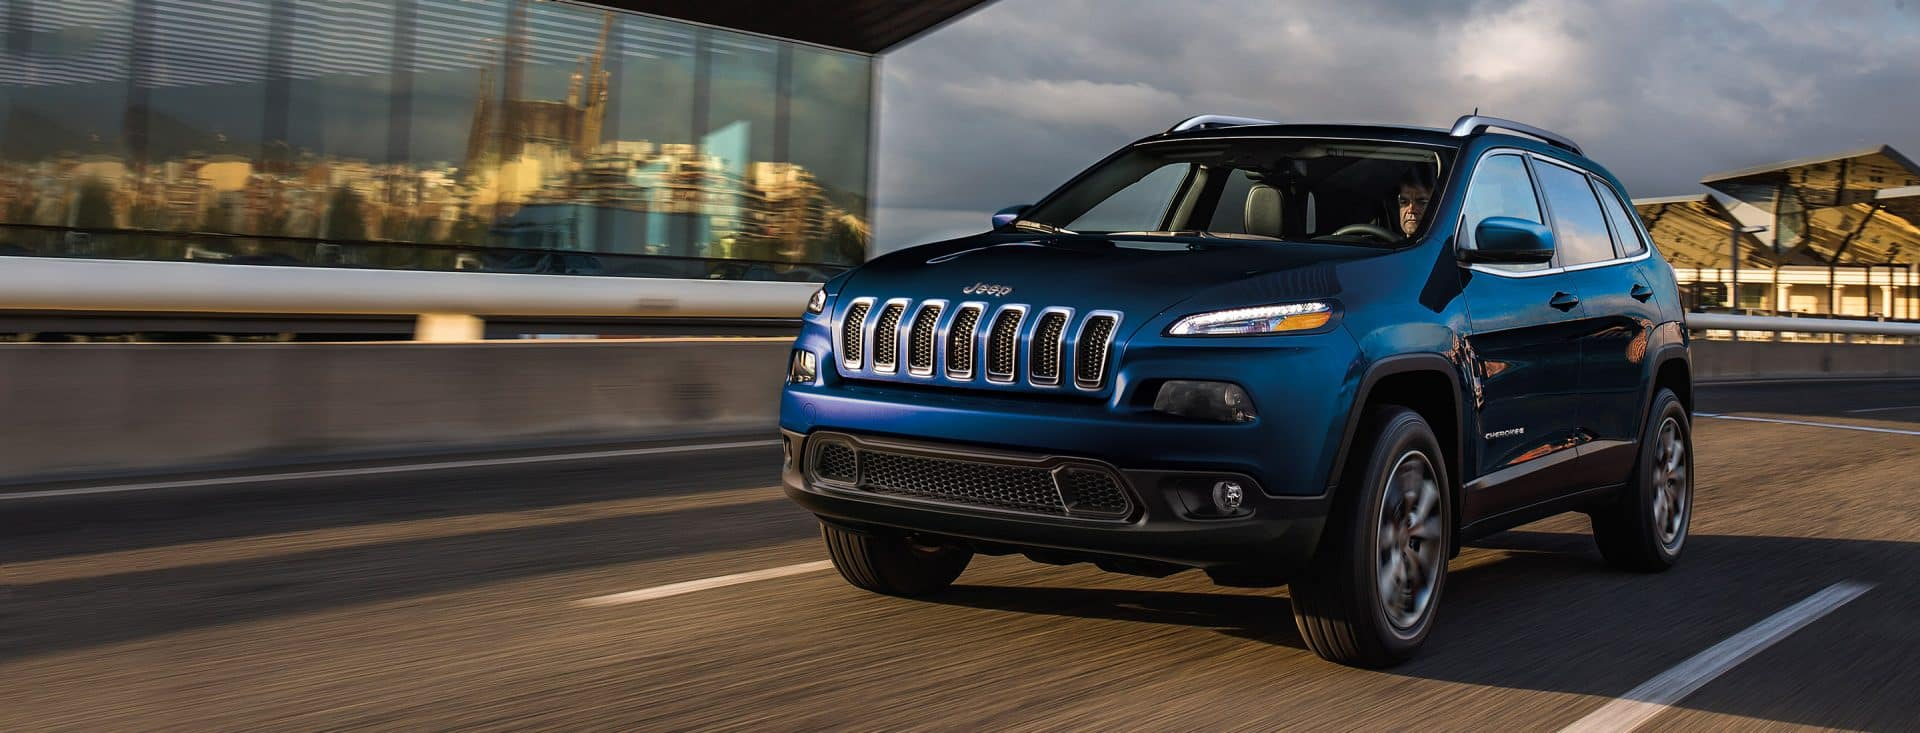 Jeep 4x4 Limited >> 2018 Jeep Cherokee - Compact SUV Ready For Adventure